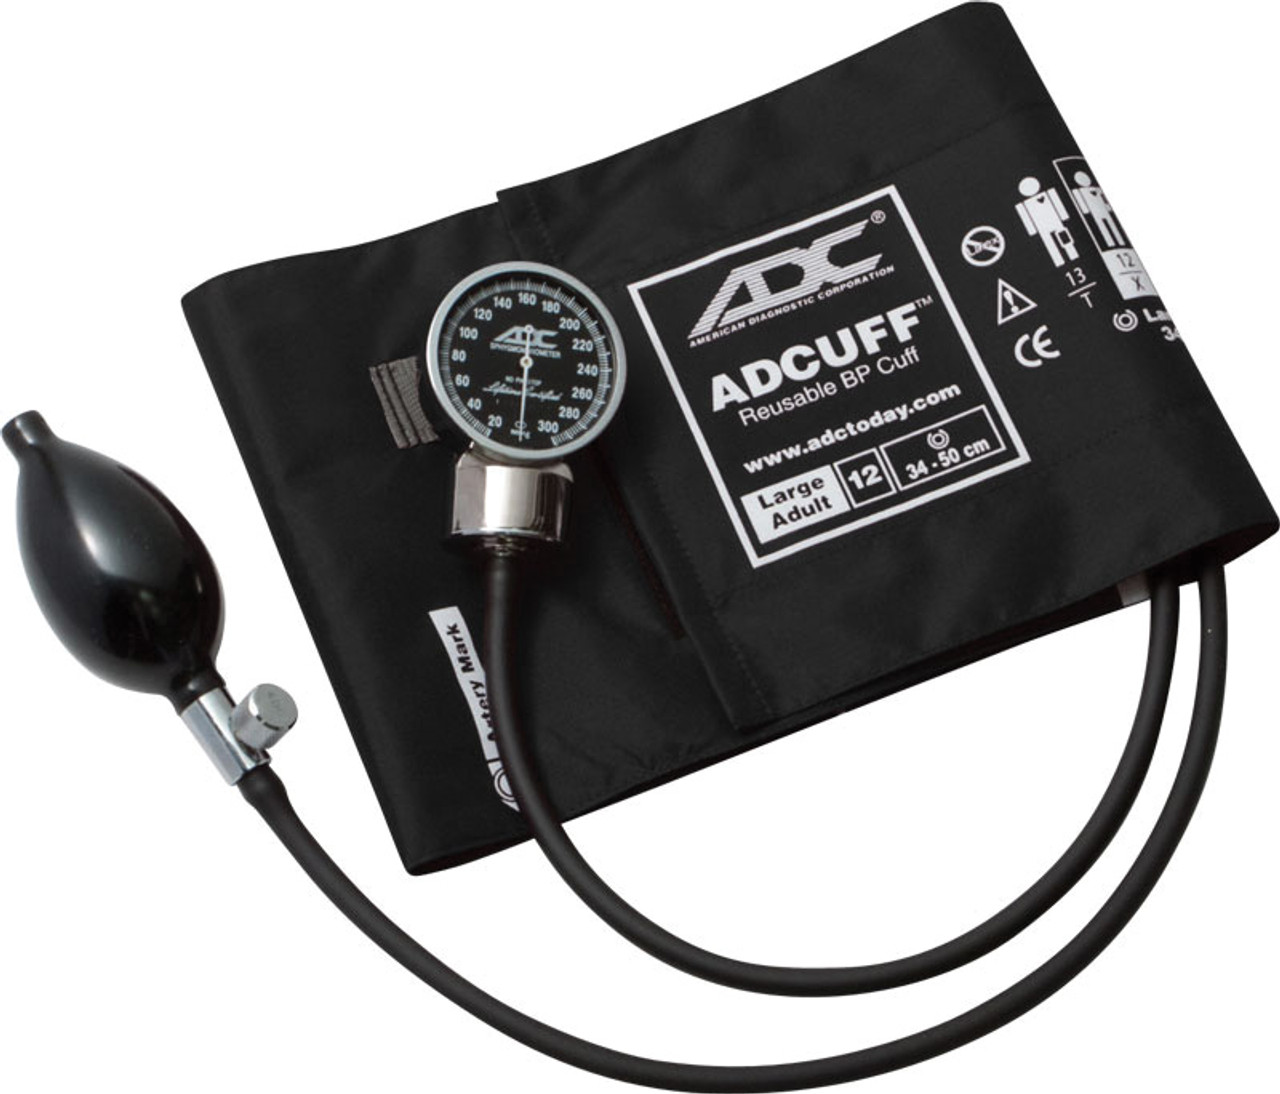 ADC 700 DIAGNOSTIX Aneroid, Large Adult Cuff, 700-12XBK